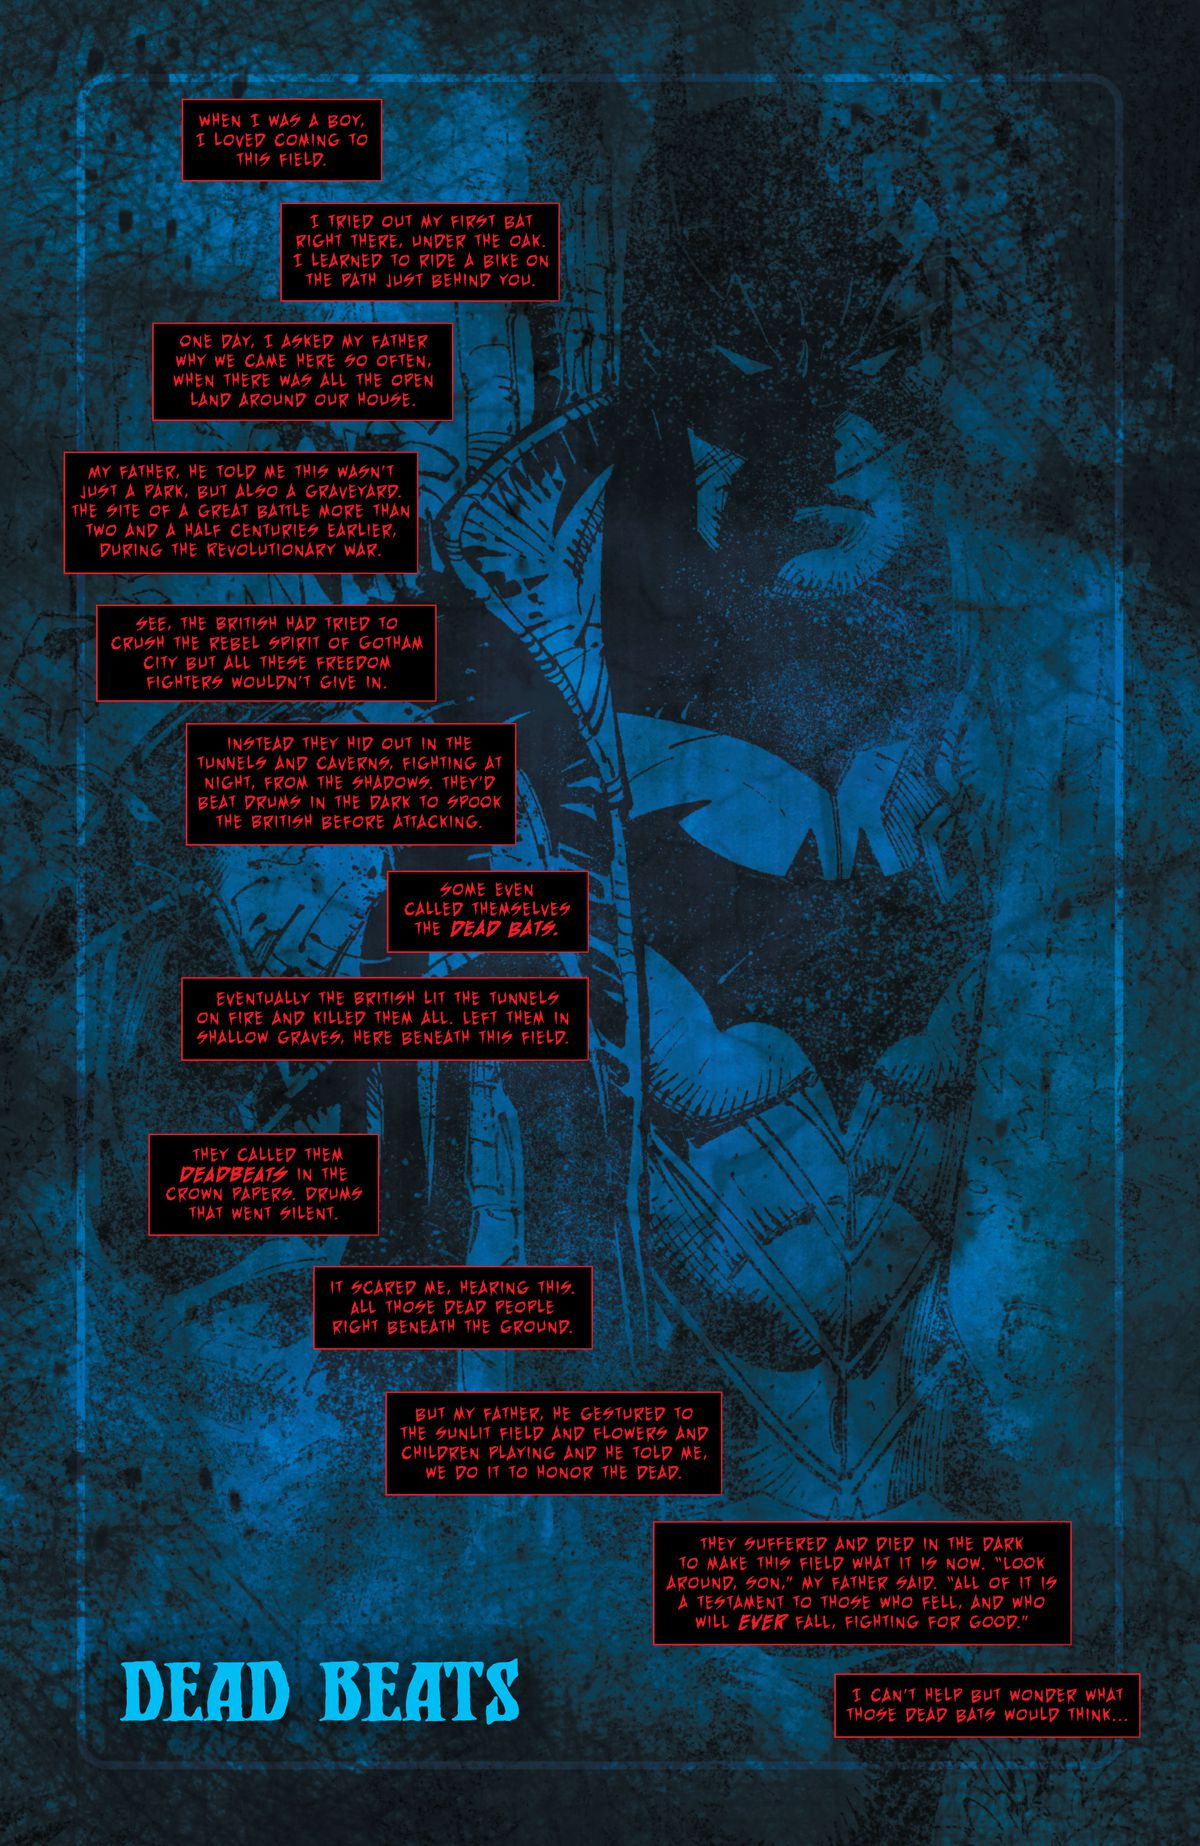 The Batman Who Laughs tells the story of how his father would take him to play on a park built atop the graves of fallen revolutionary soldiers, in Dark Nights: Death Metal #1, DC Comics (2020).